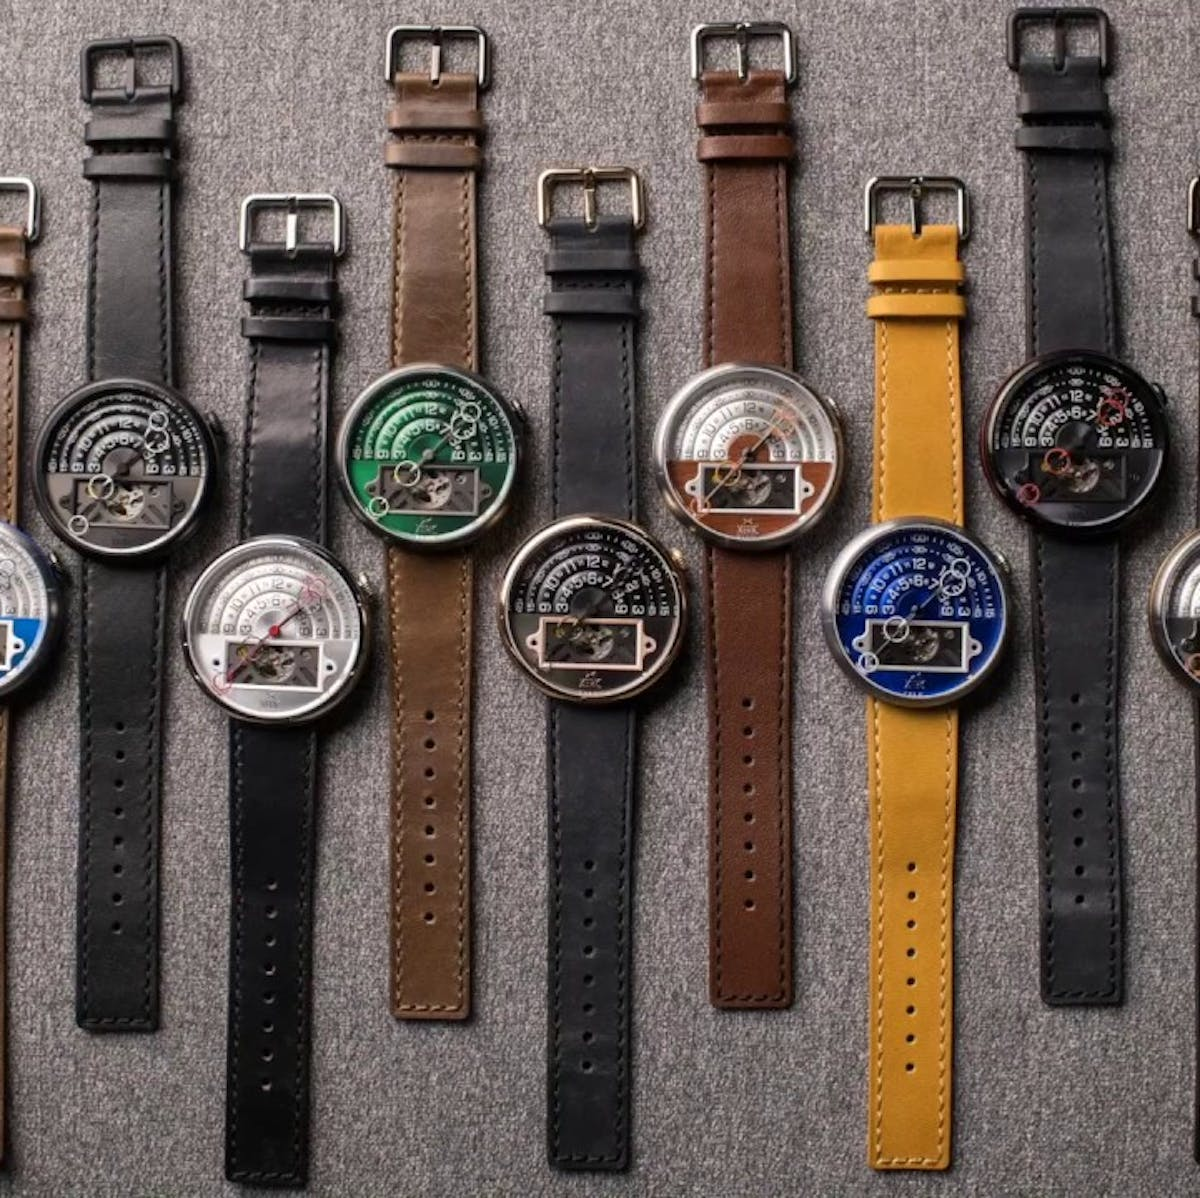 4 Watches That Go With Literally Every Look